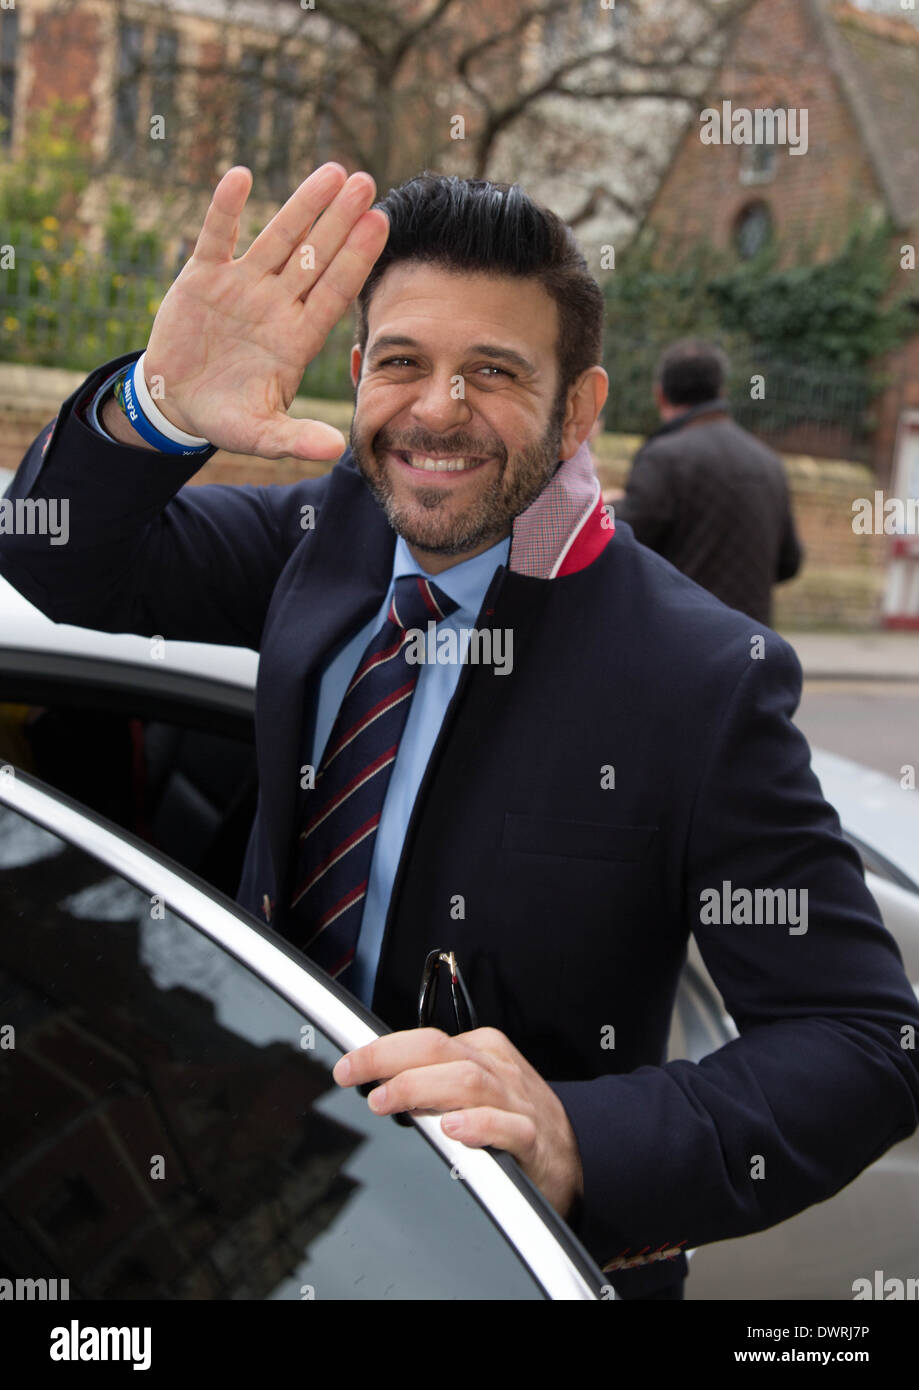 Adam Richman of Man Vs Food presenter leaving Oxford union after his talk. - Stock Image